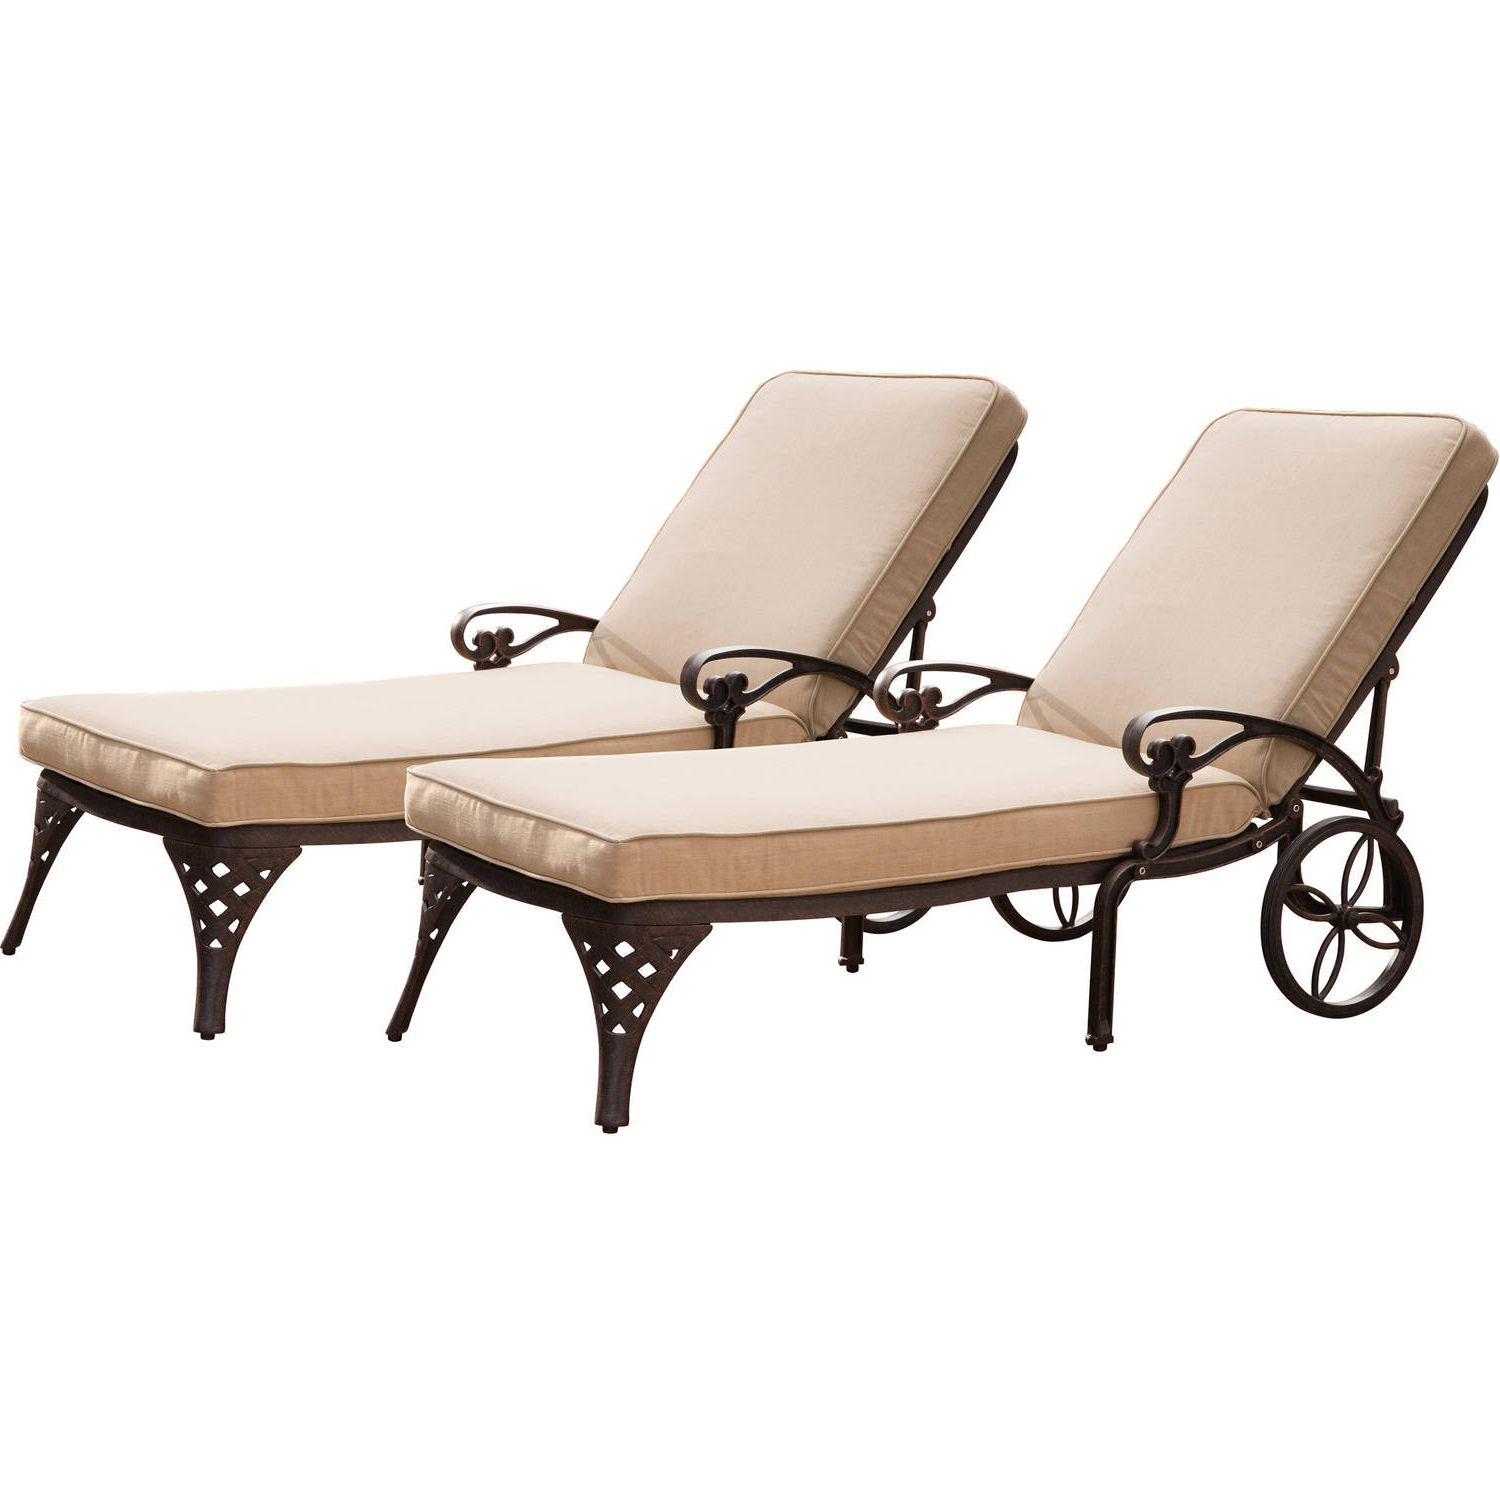 Home Styles Floral Blossom Outdoor Chaise Lounge Chair With Cushion,  Charcoal Regarding Widely Used Floral Blossom Chaise Lounge Chairs With Cushion (View 19 of 25)